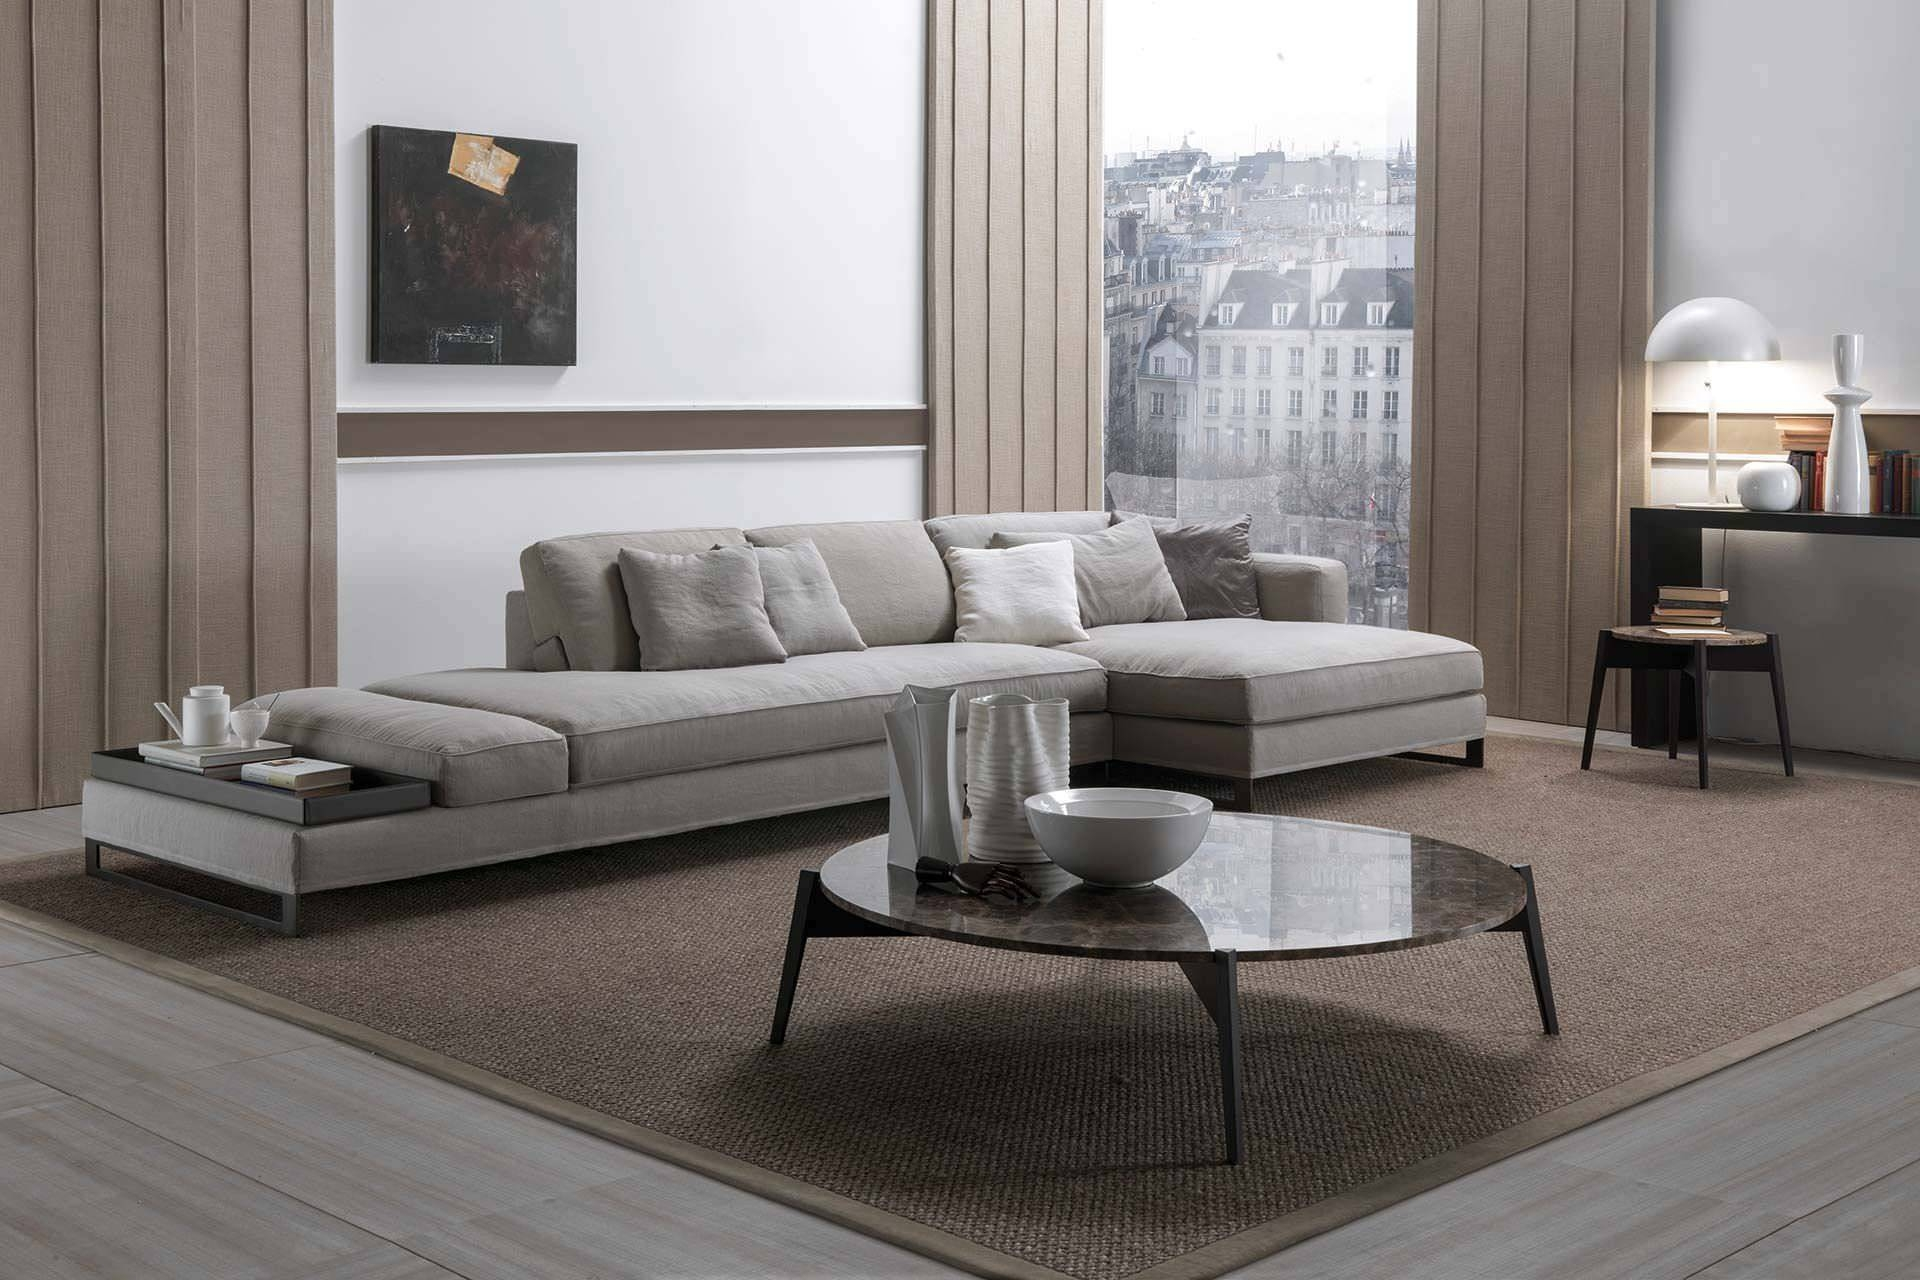 Modular Sofa / Contemporary / Fabric / Leather - Davis Flat intended for Davis Sofas (Image 12 of 15)